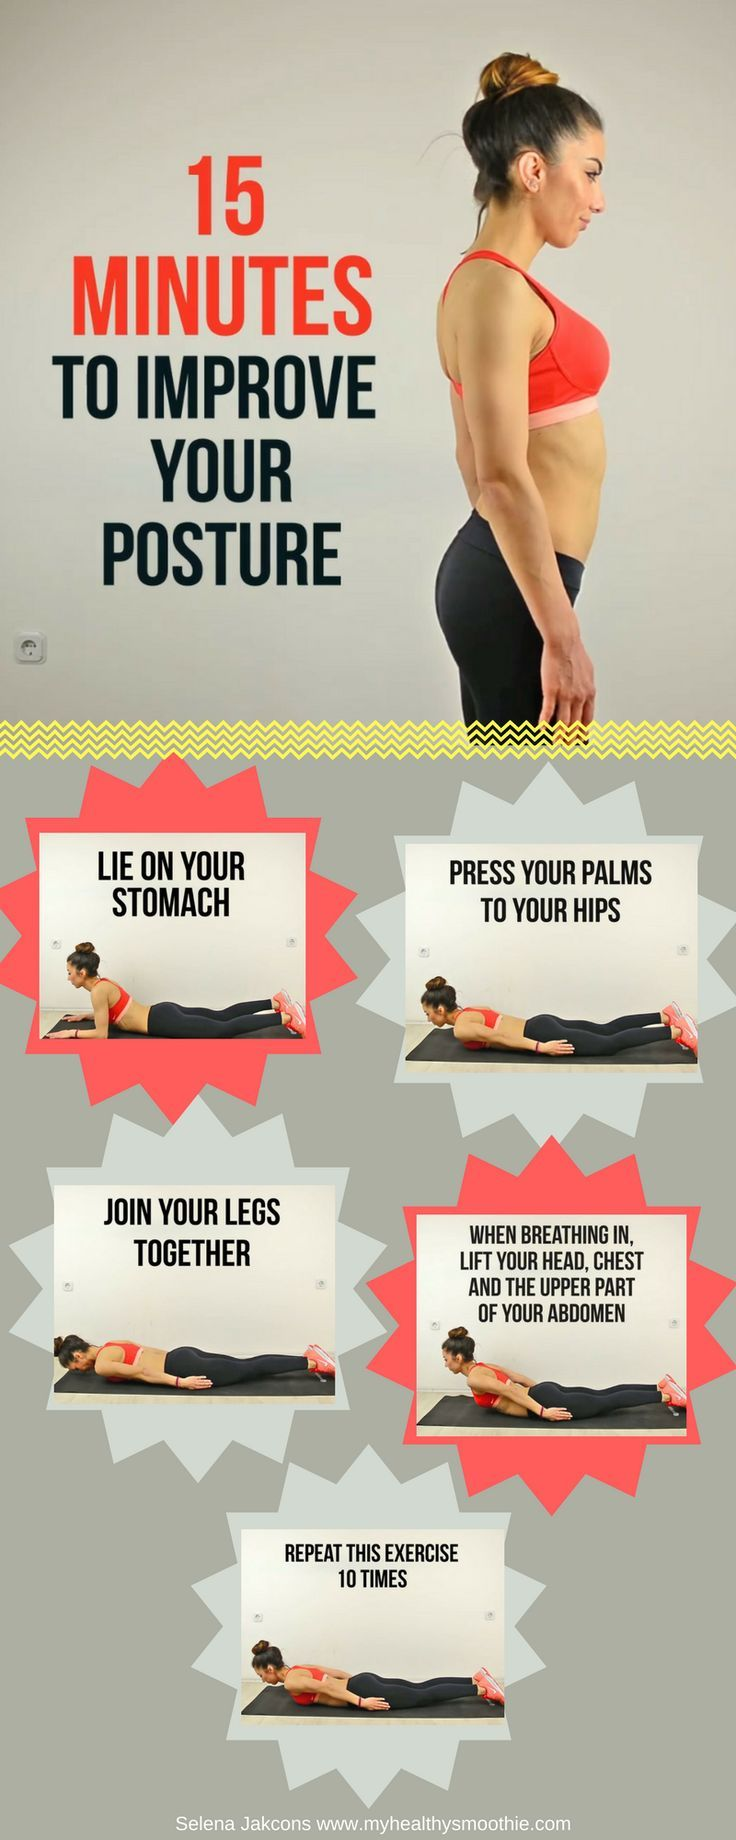 Pin on ergonomic posture and exercises